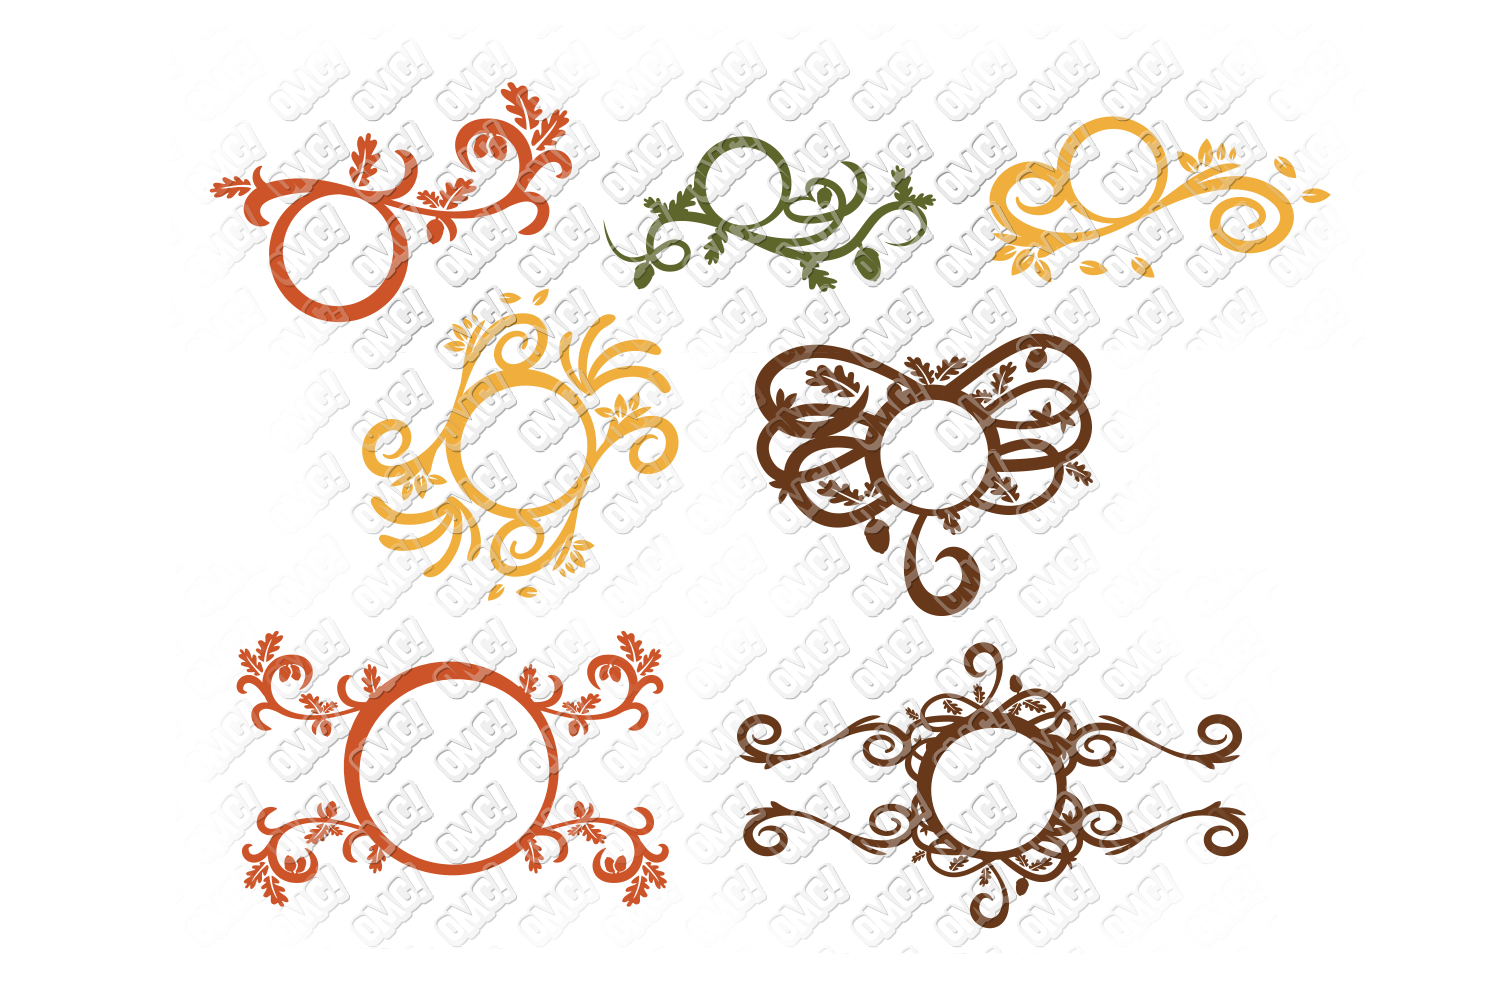 Fall Flourish SVG Monogram Border in SVG, DXF, PNG, EPS, JPG example image 3